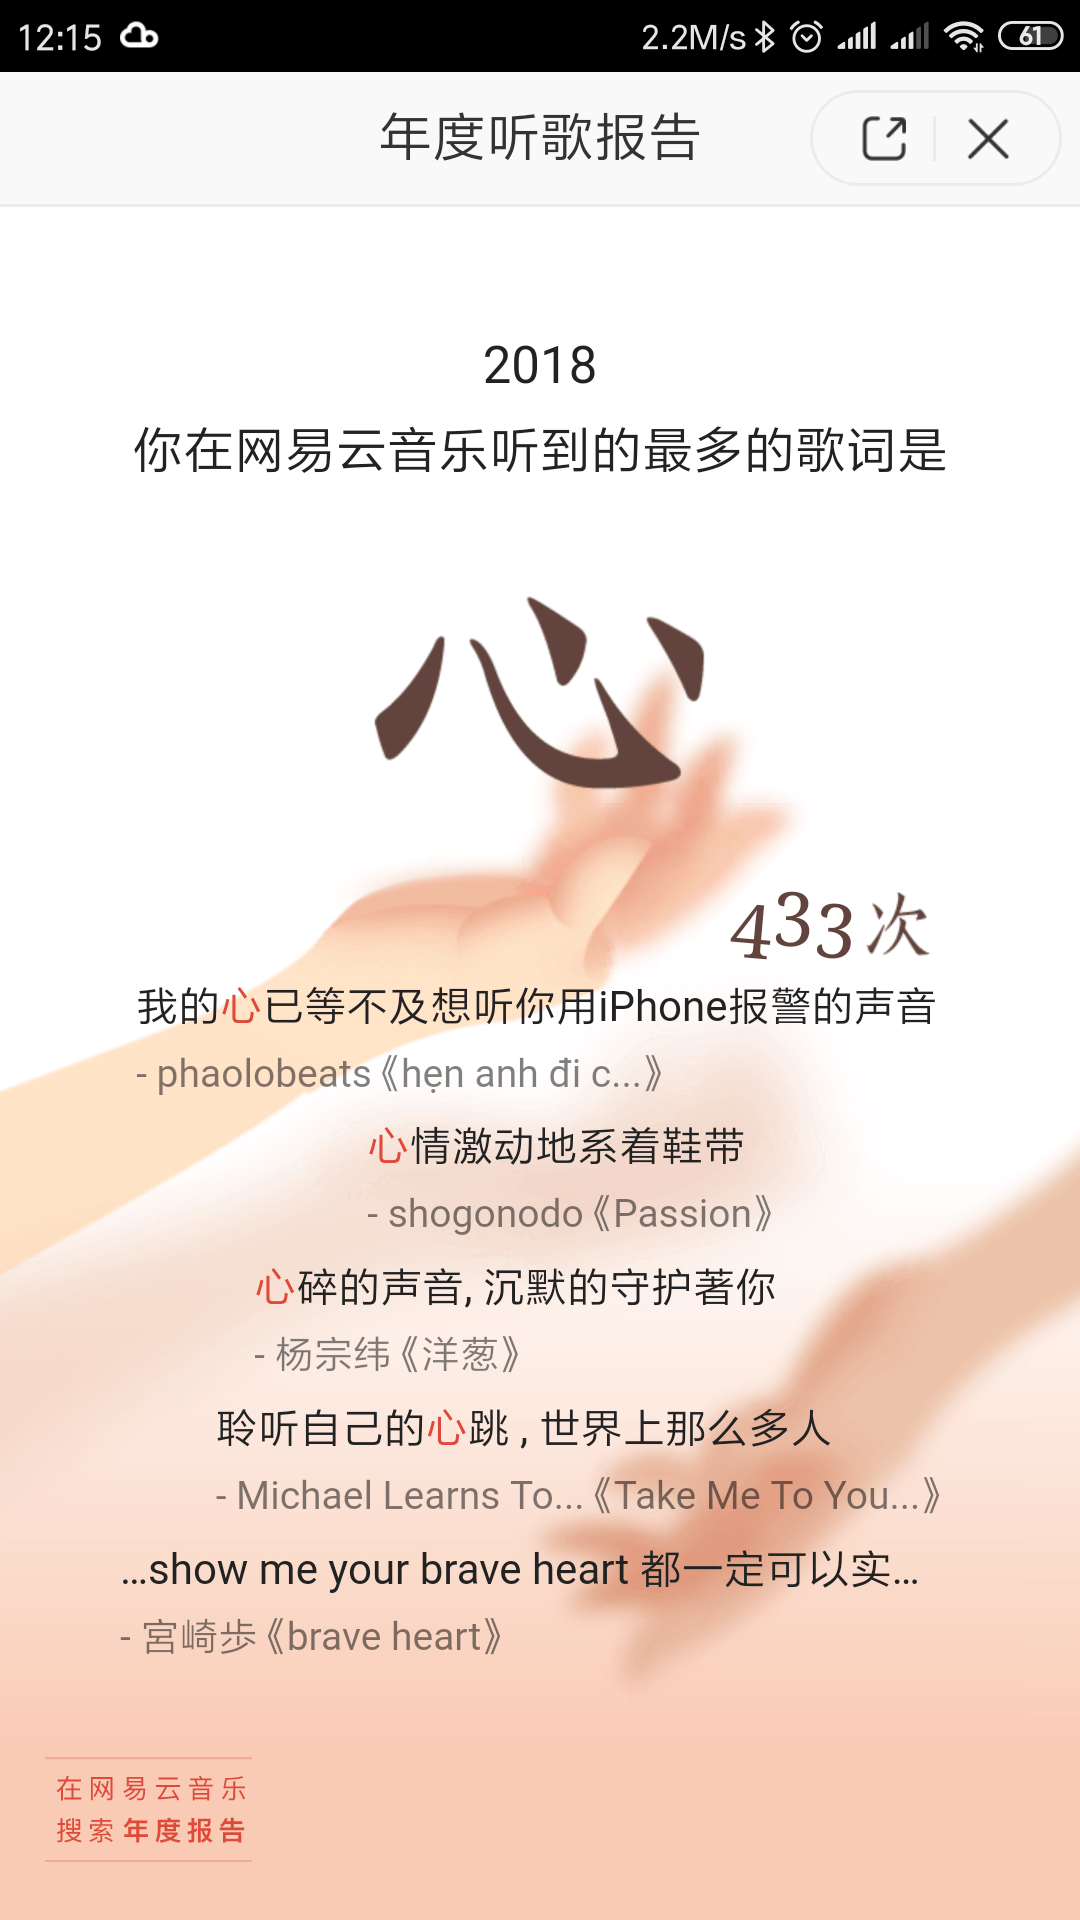 Screenshot_2019-01-04-12-15-20-375_com.netease.cloudmusic.png